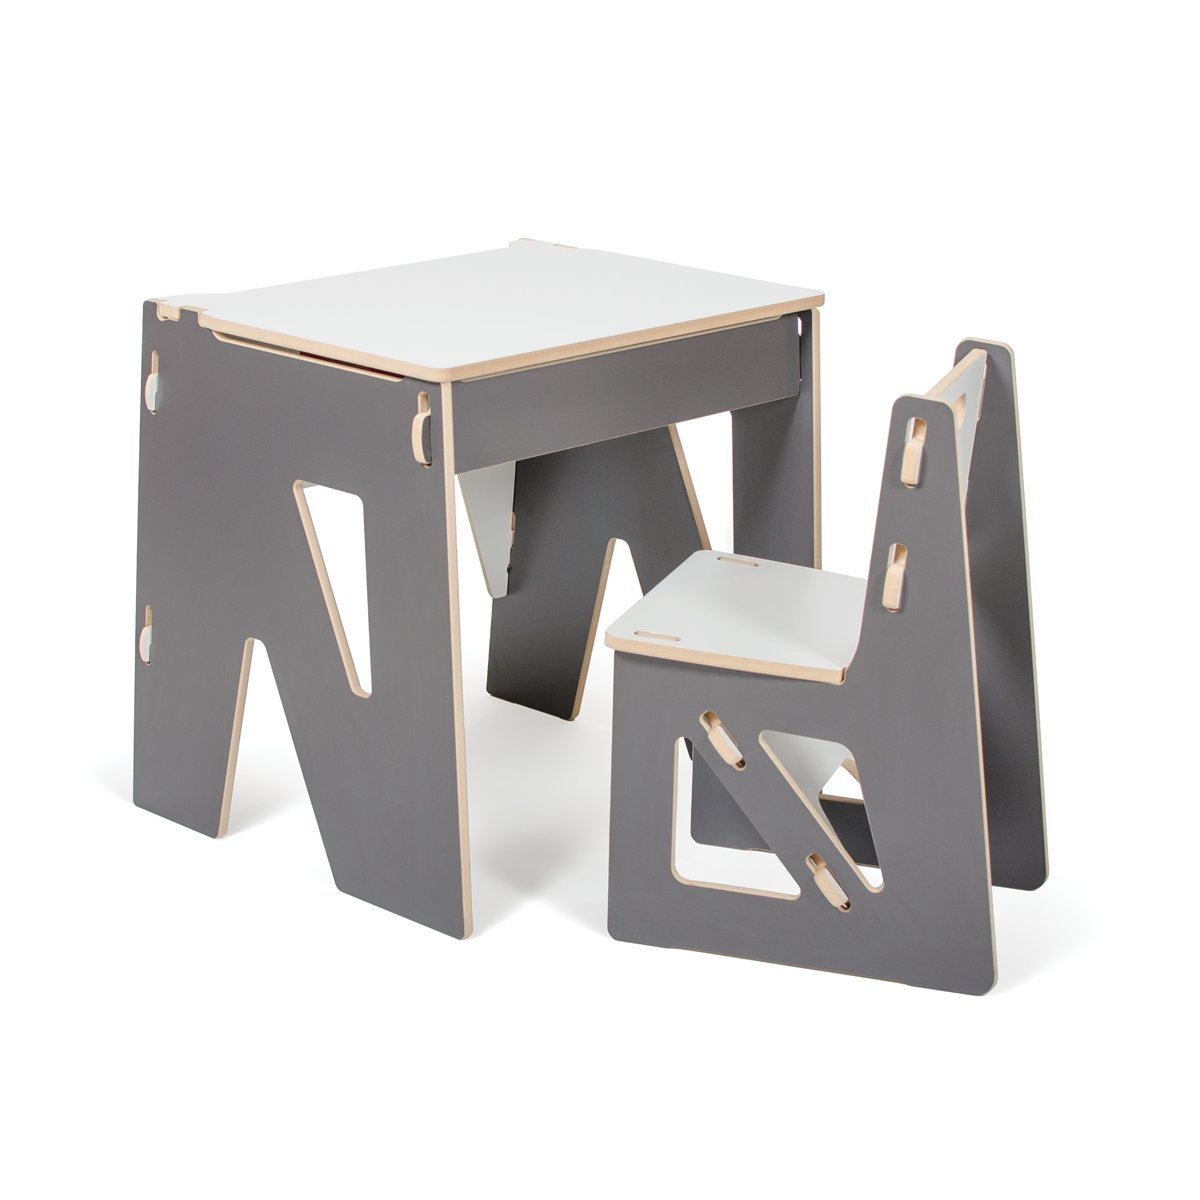 Grey Modern Kids Desk and Chair with Storage, American Made